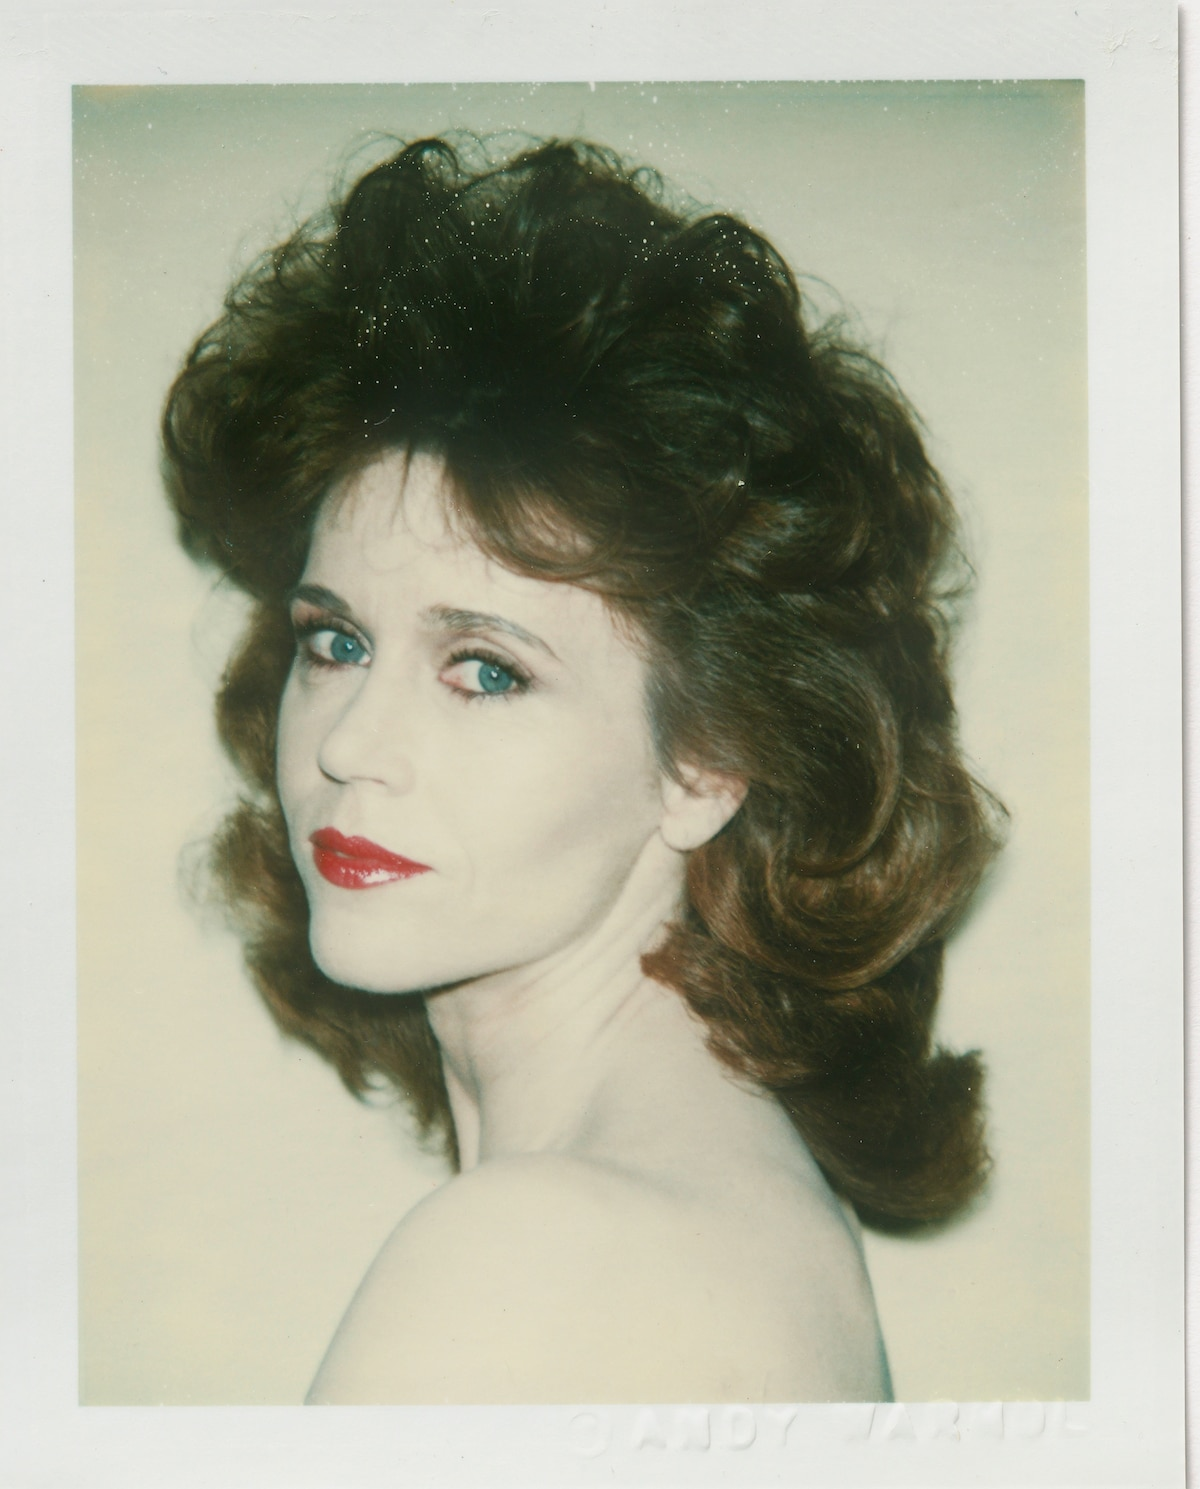 Andy Warhol Polaroid of Jane Fonda